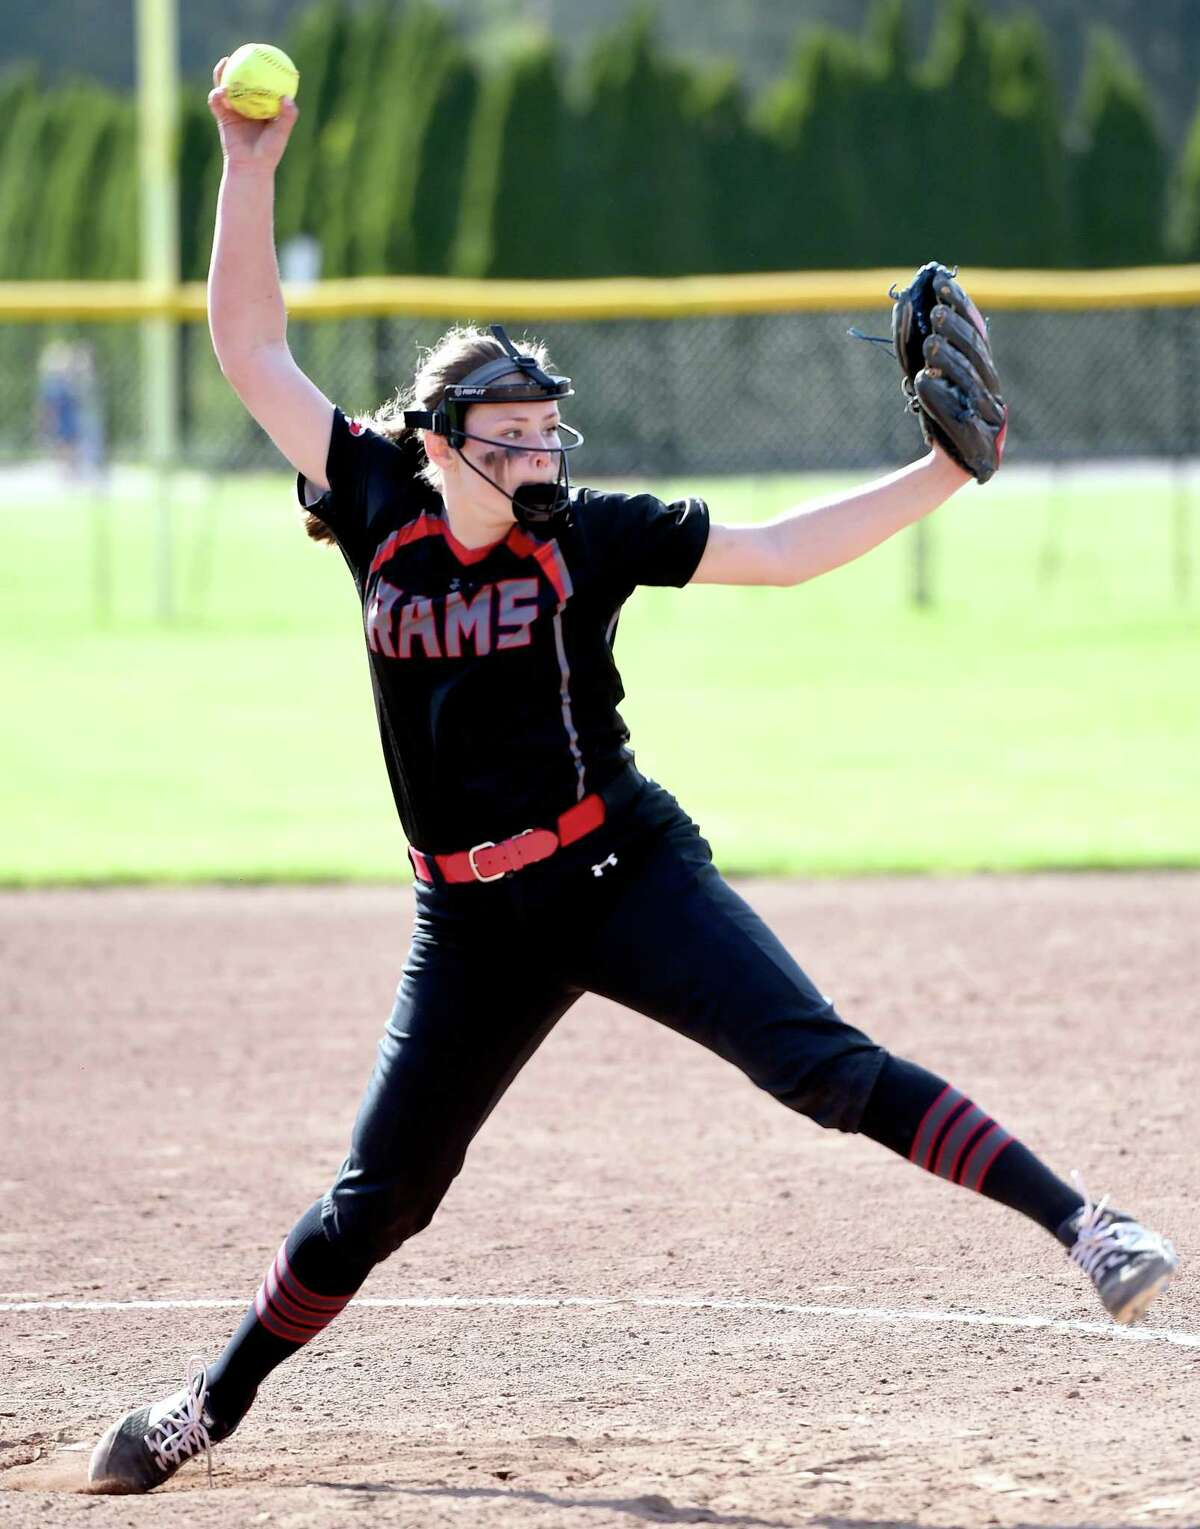 Cheshire's Bri Pearson tossed a no-hitter in a 3-0 win over rival Amity on Tuesday.